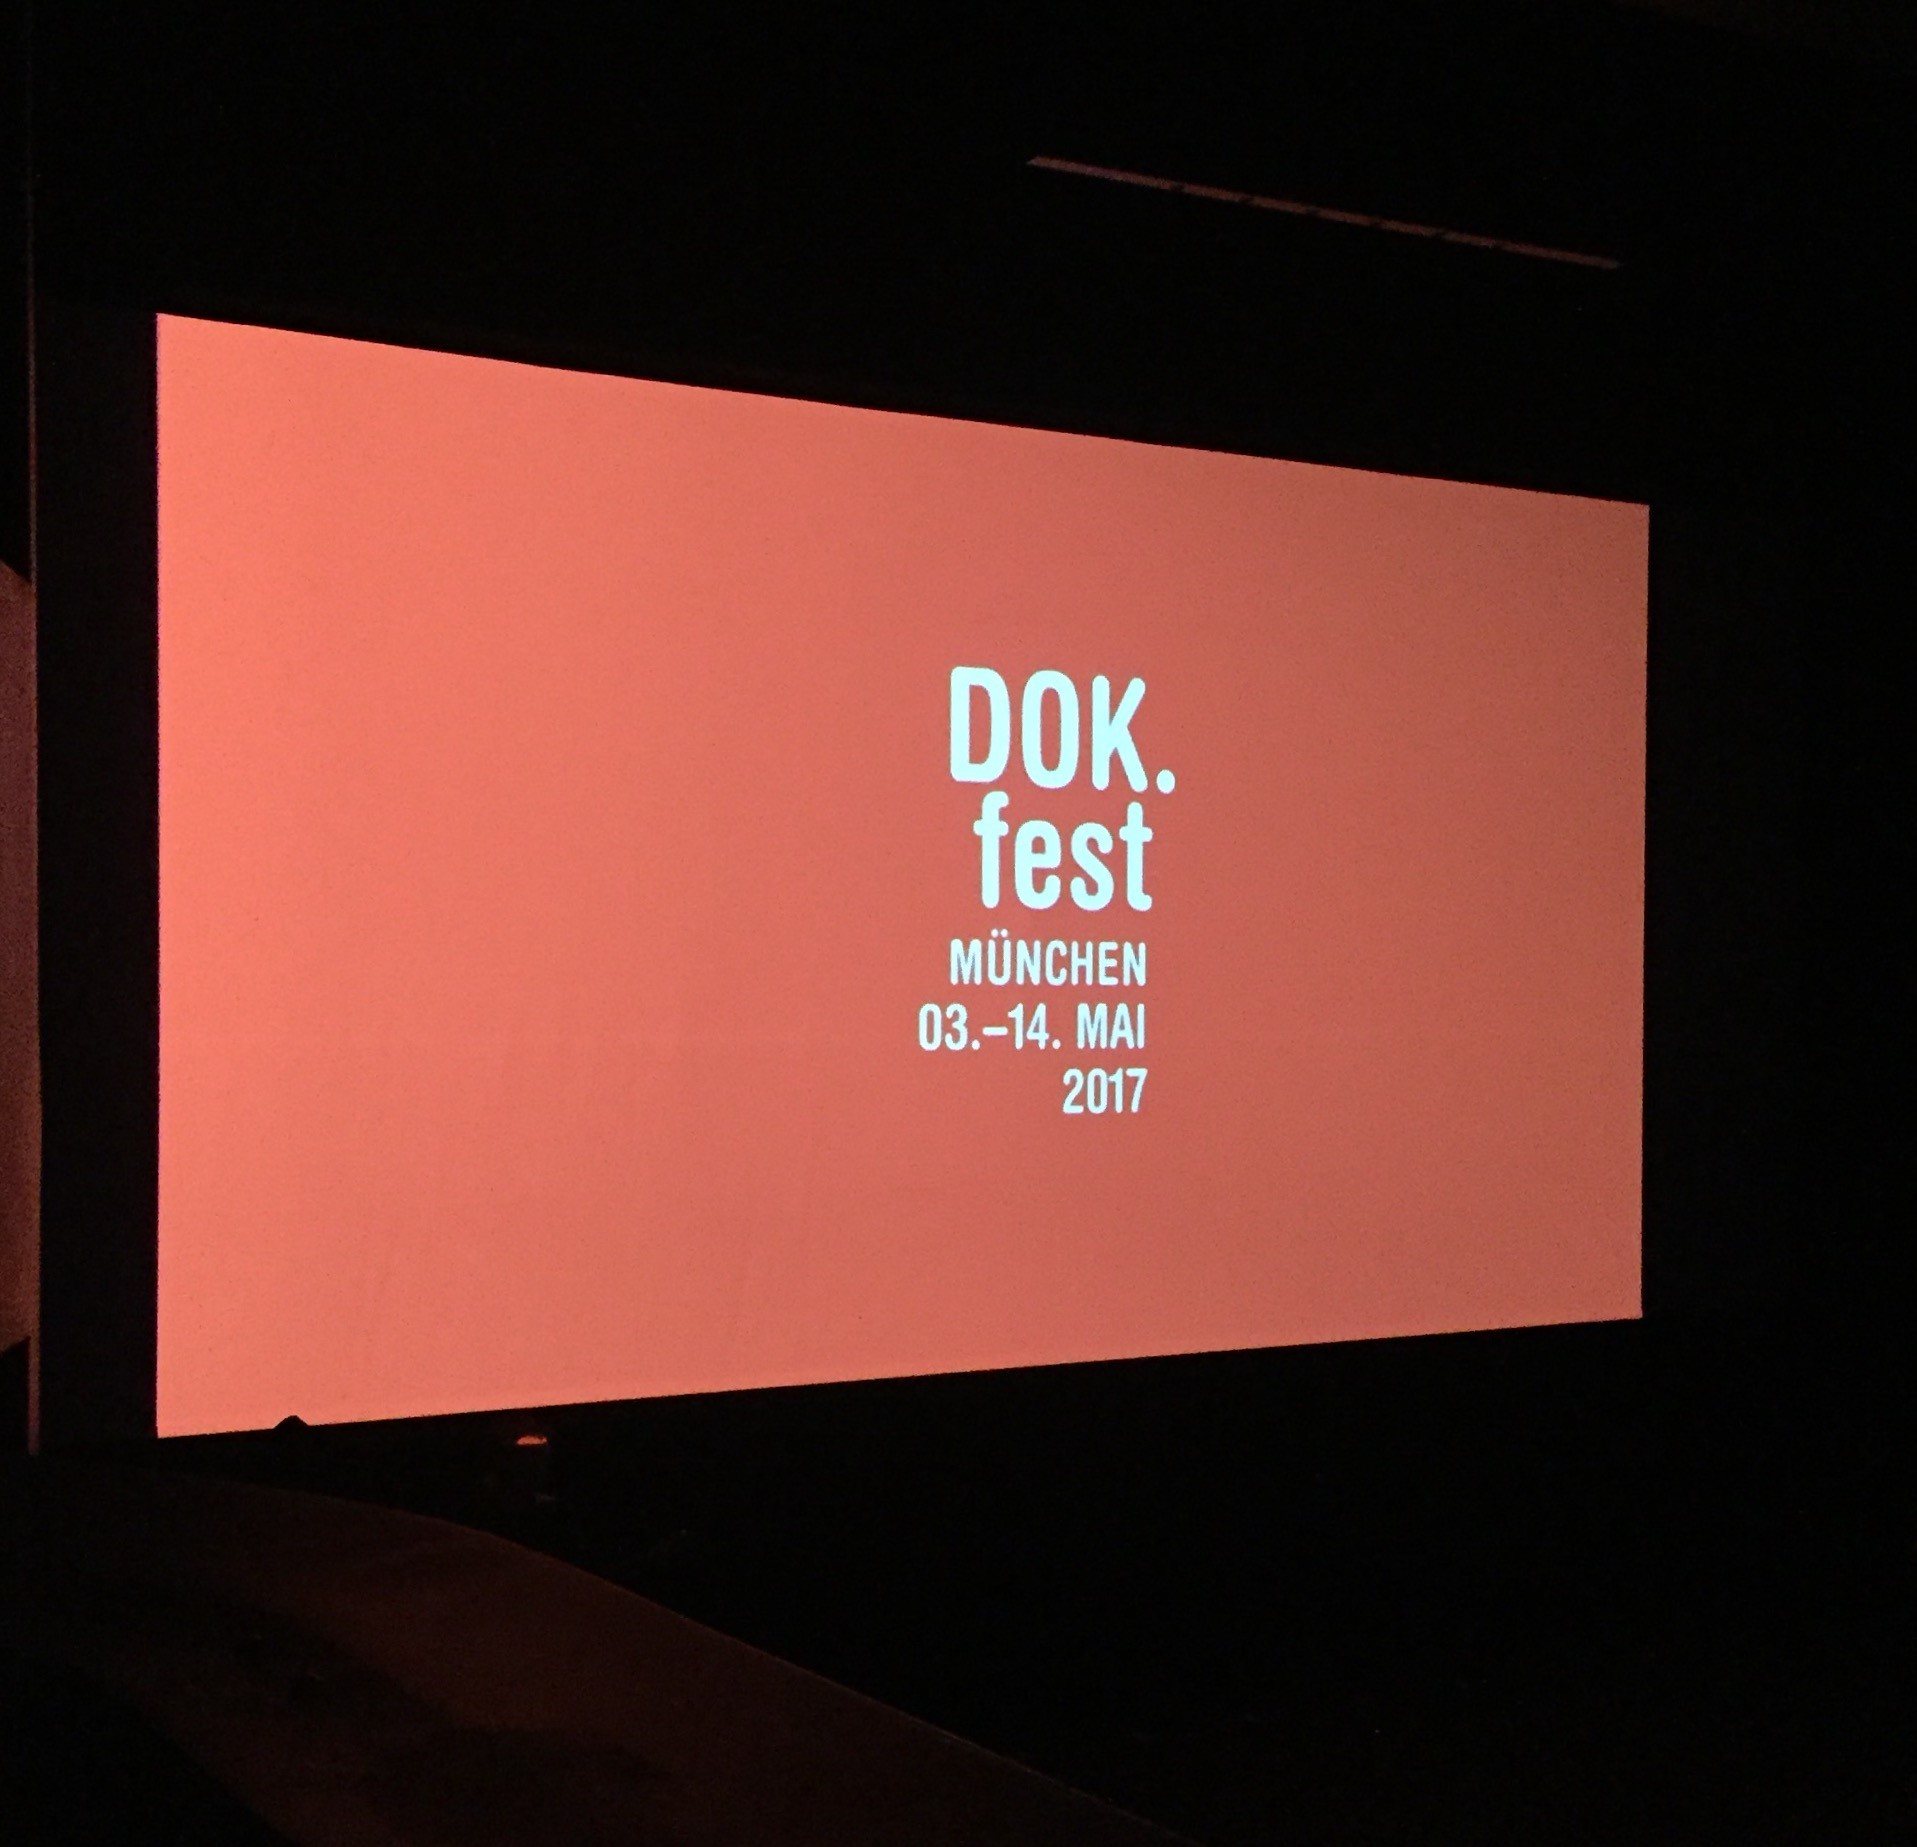 Das 32. internationale DOK.fest 2017 in München